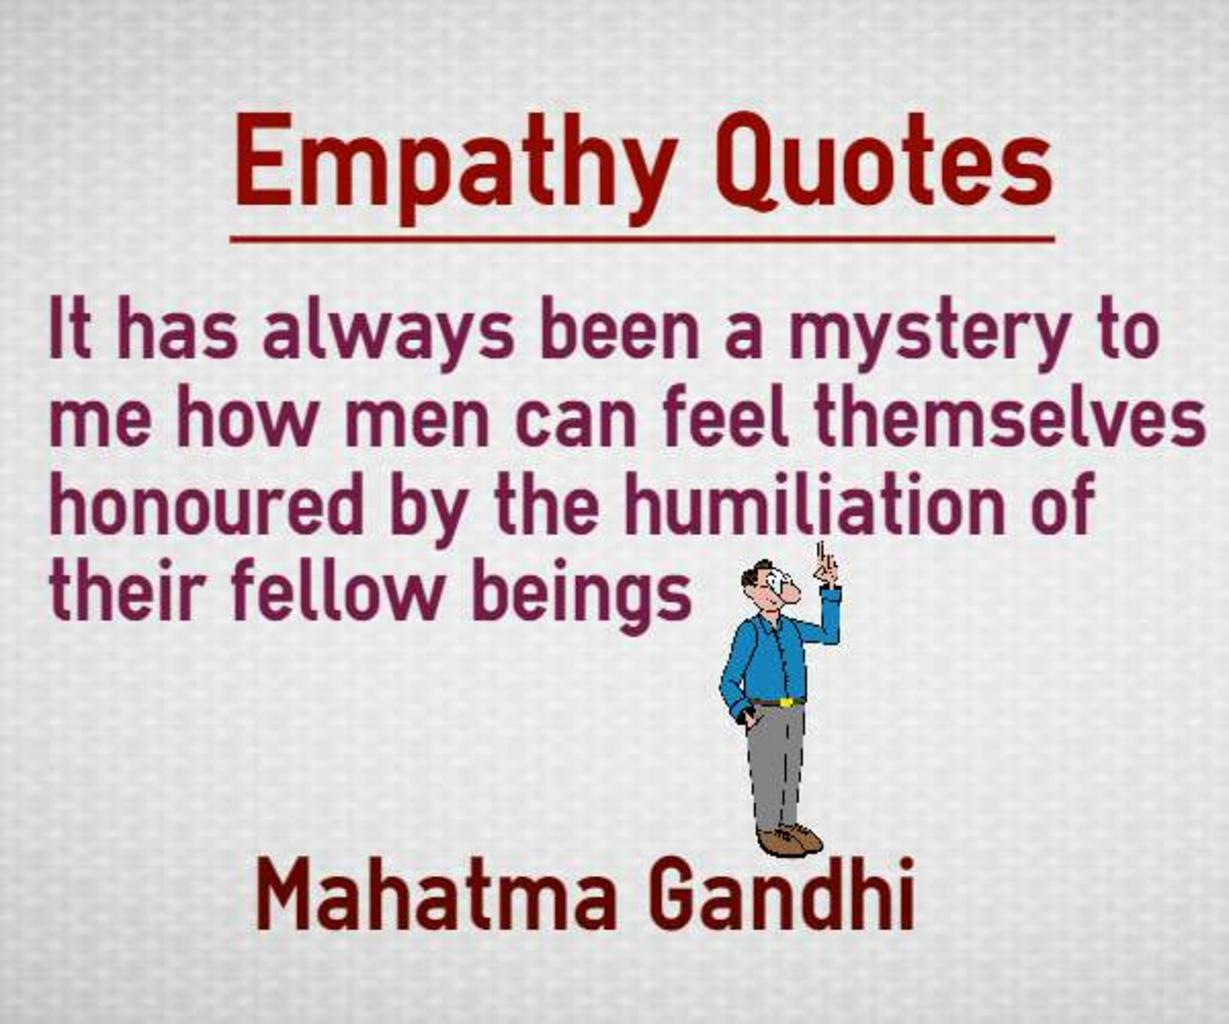 what does empathy mean